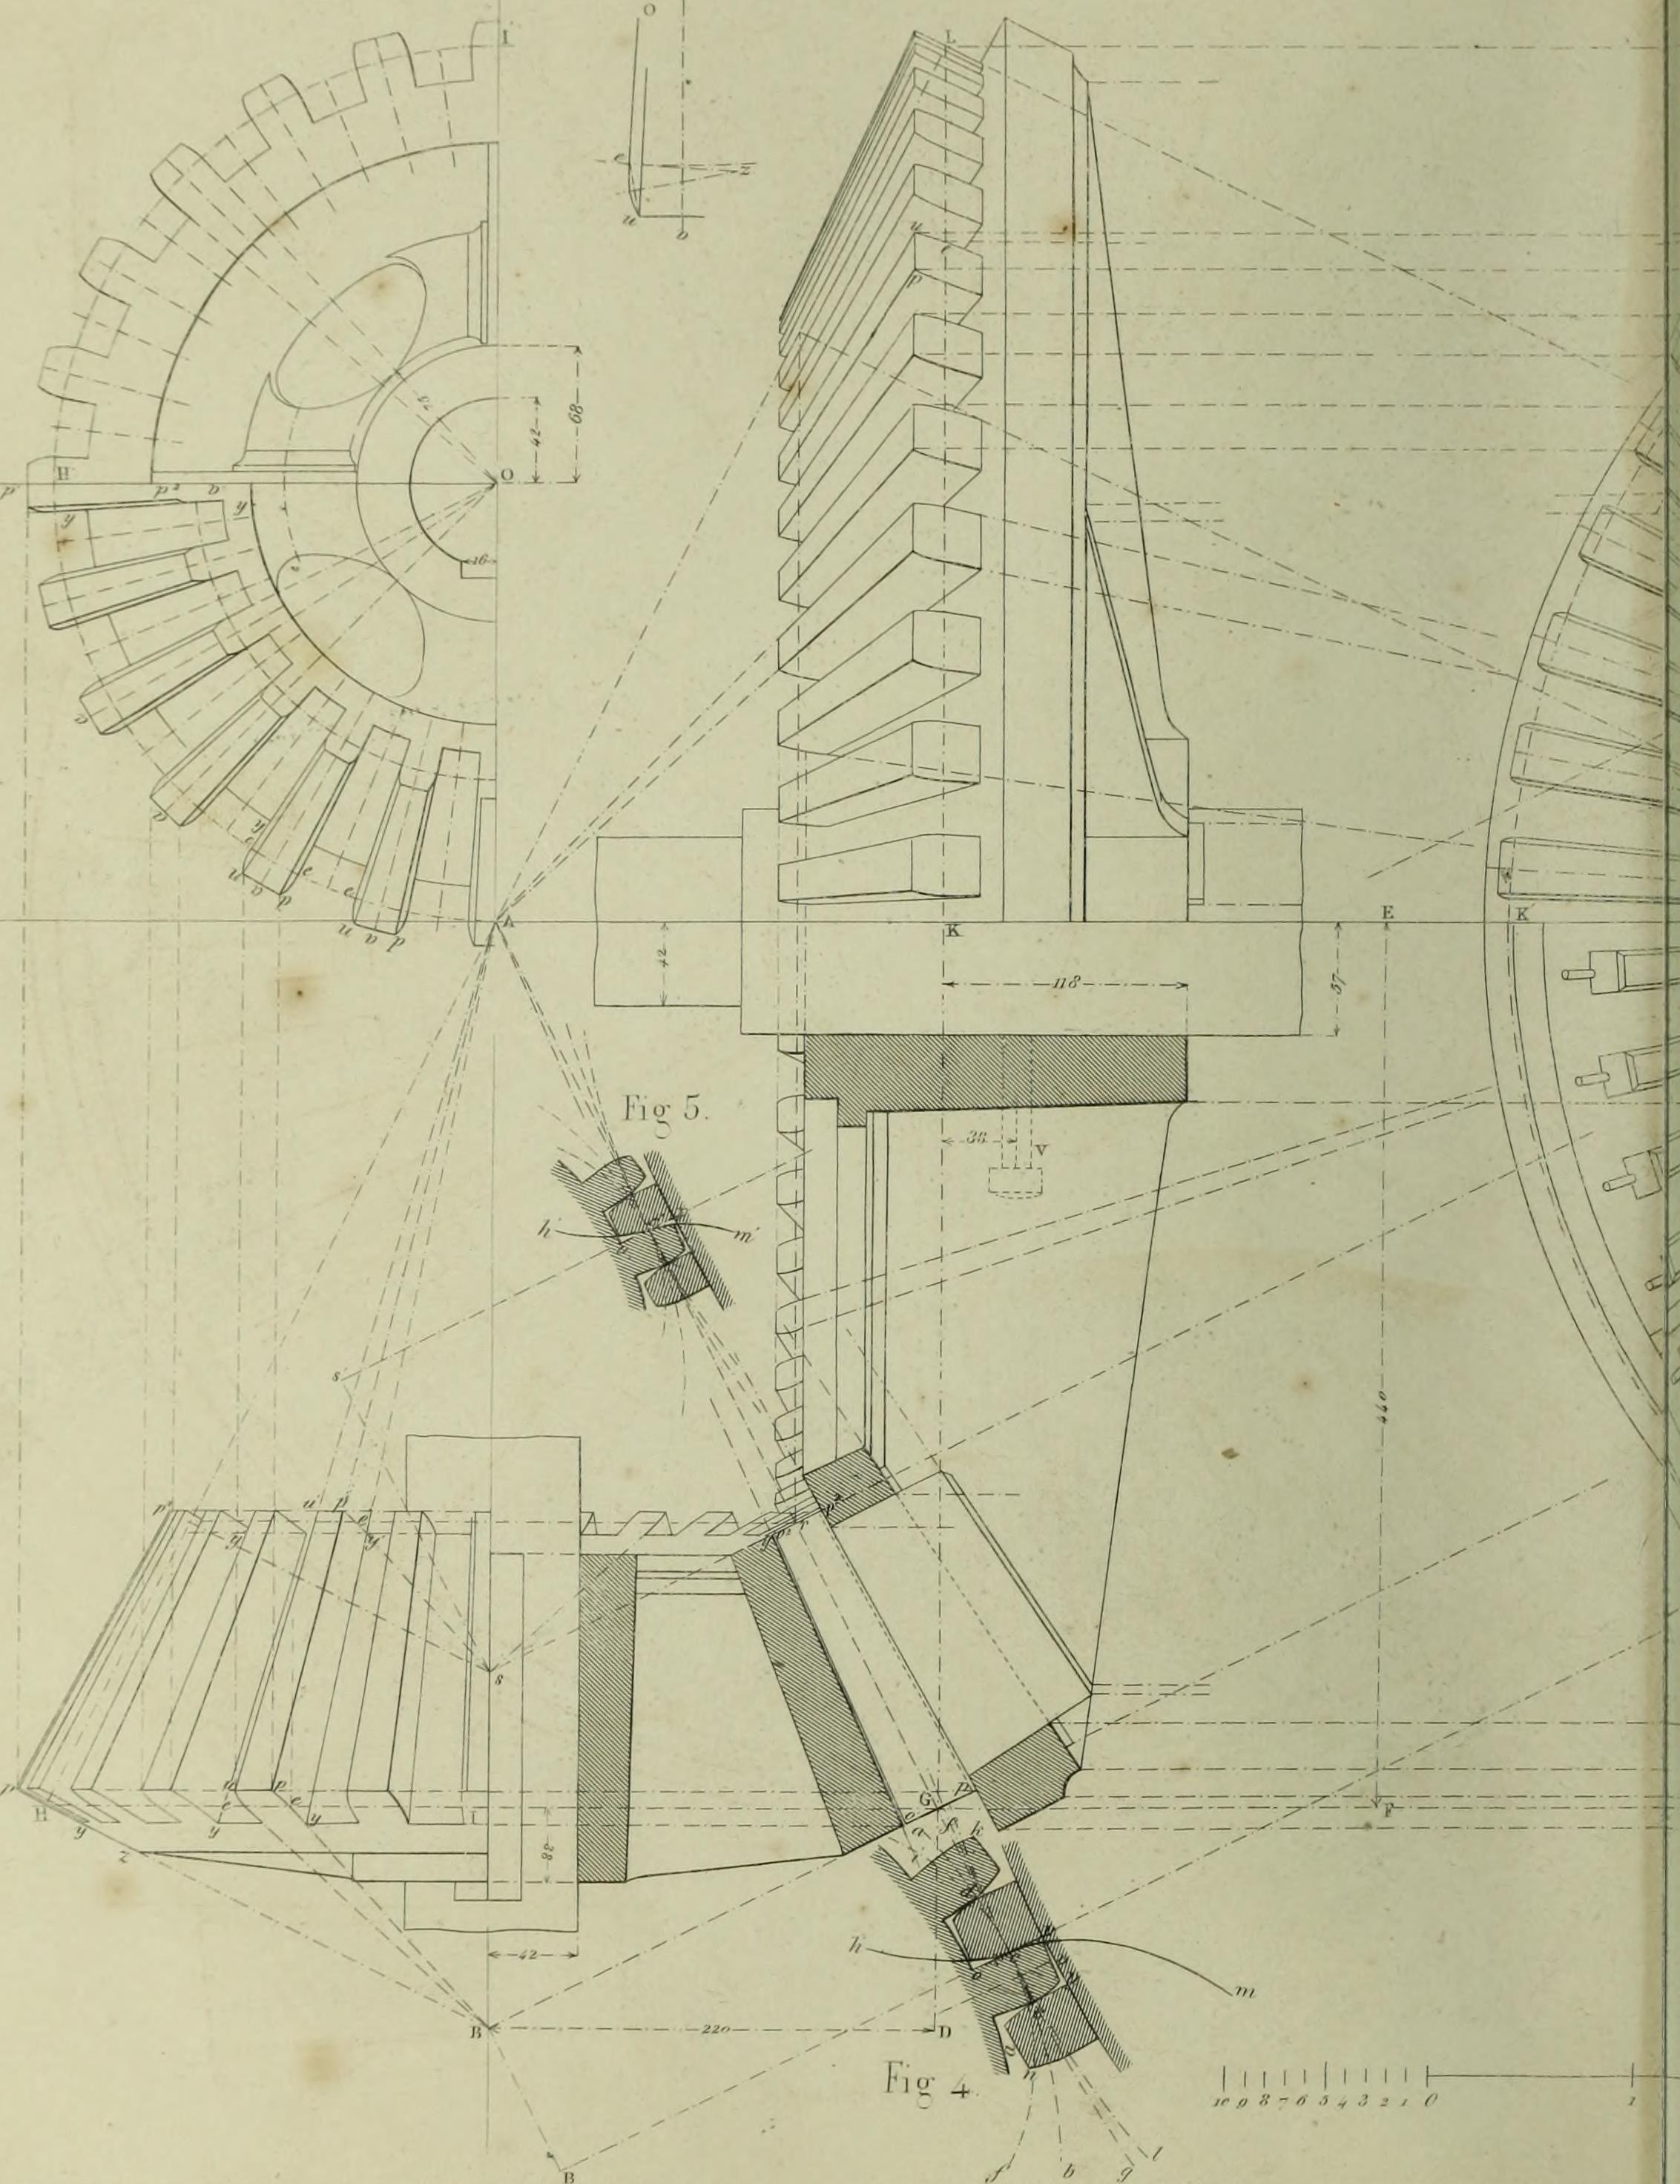 Architectural Drawing Course file:the practical draughtsman's book of industrial design and